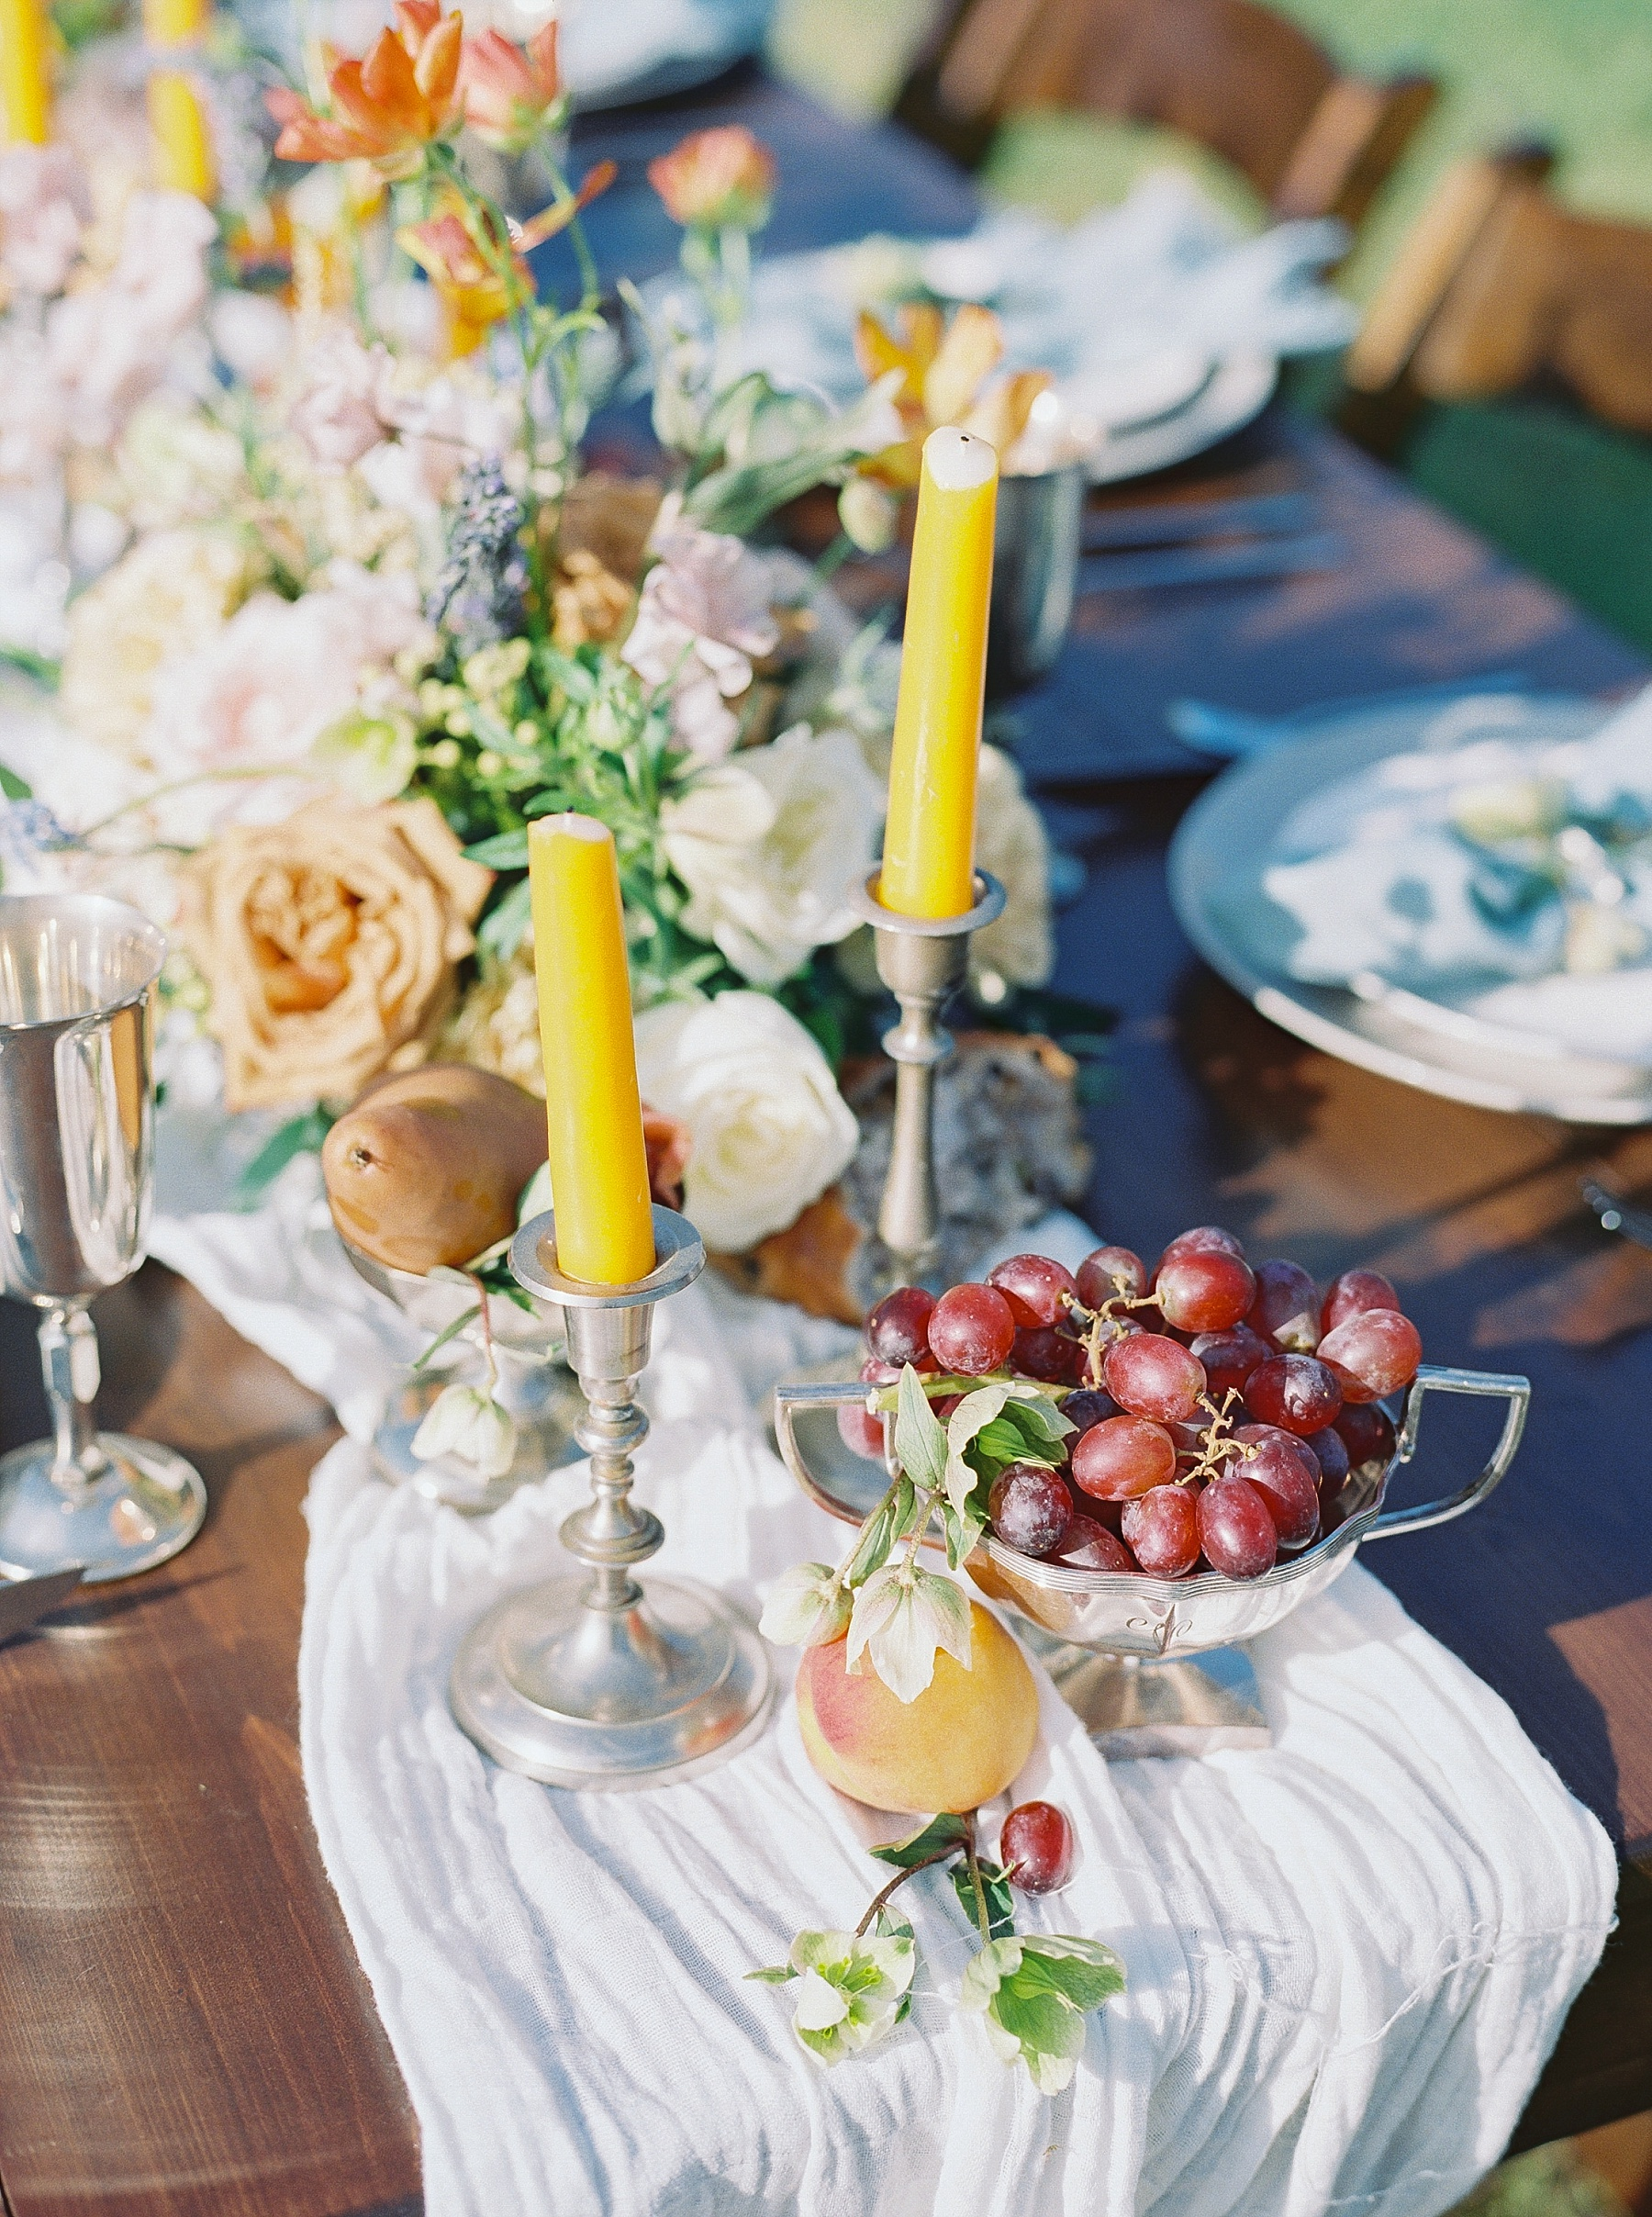 Intimate Spanish and French Inspired Destination Wedding with Lakeside Dinner Party at Dusk at Wildcliff by Kelsi Kliethermes Photography Best Missouri and Maui Wedding Photographer_0064.jpg